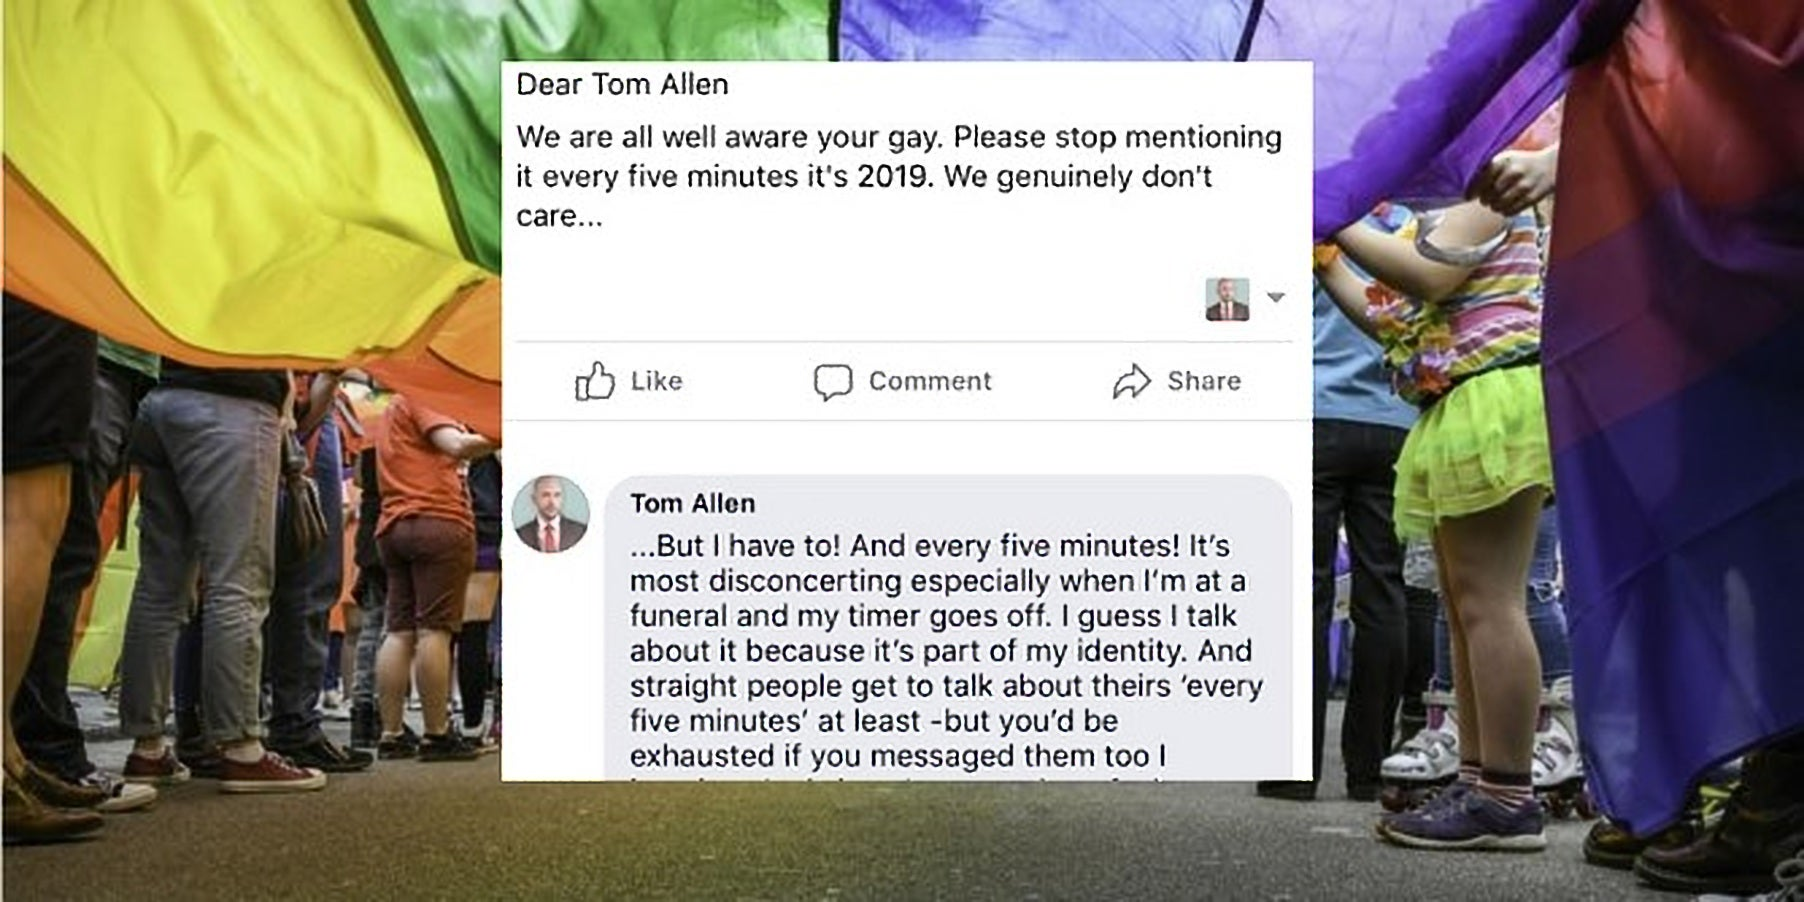 Comedian responds perfectly to troll who asks him to 'stop